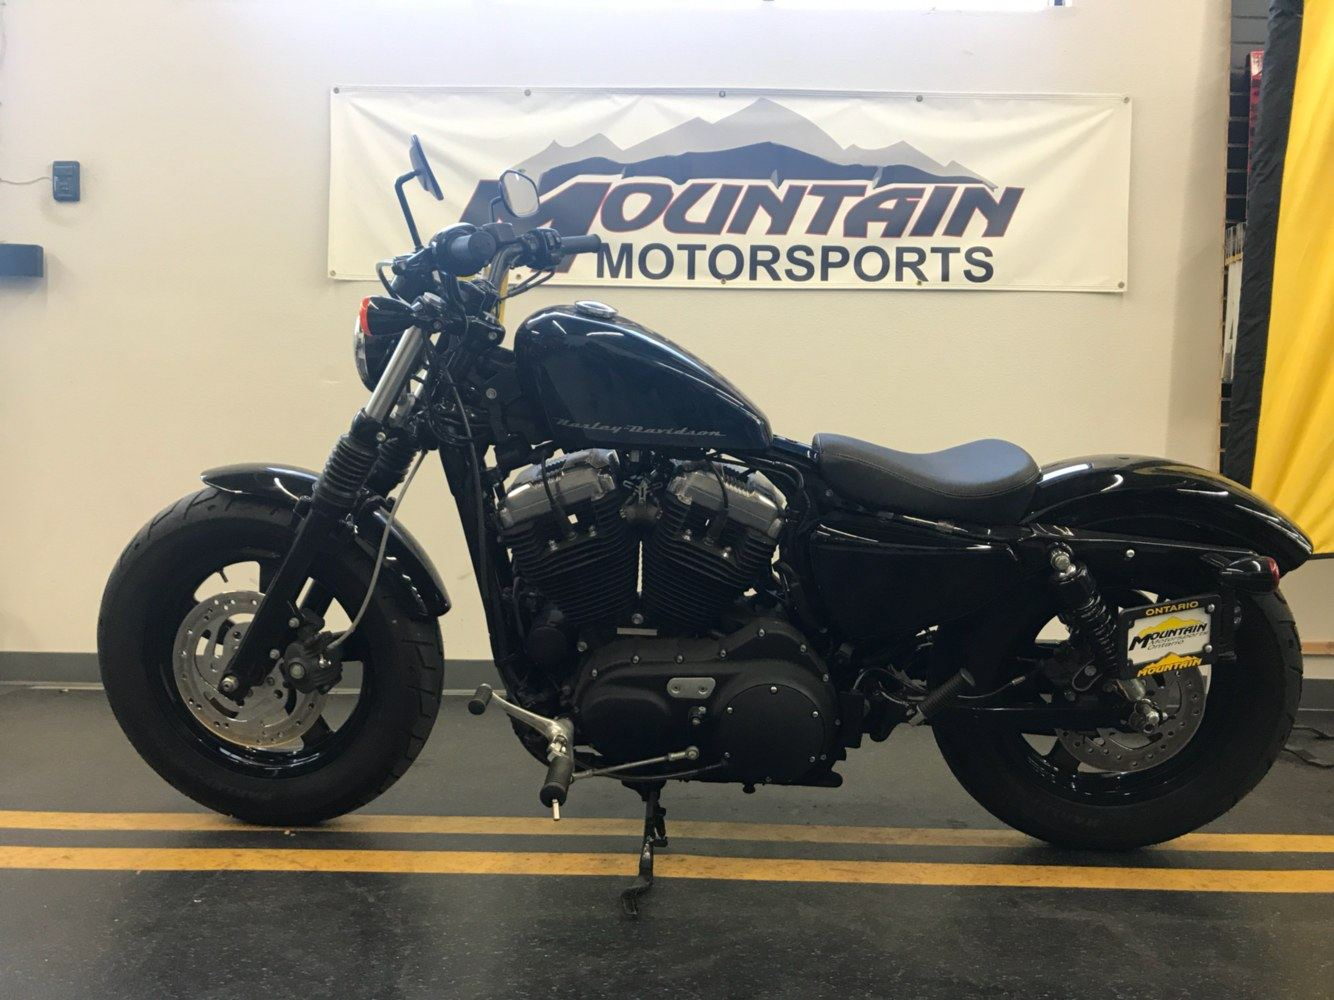 2014 Harley-Davidson XL1200X in Ontario, California - Photo 2